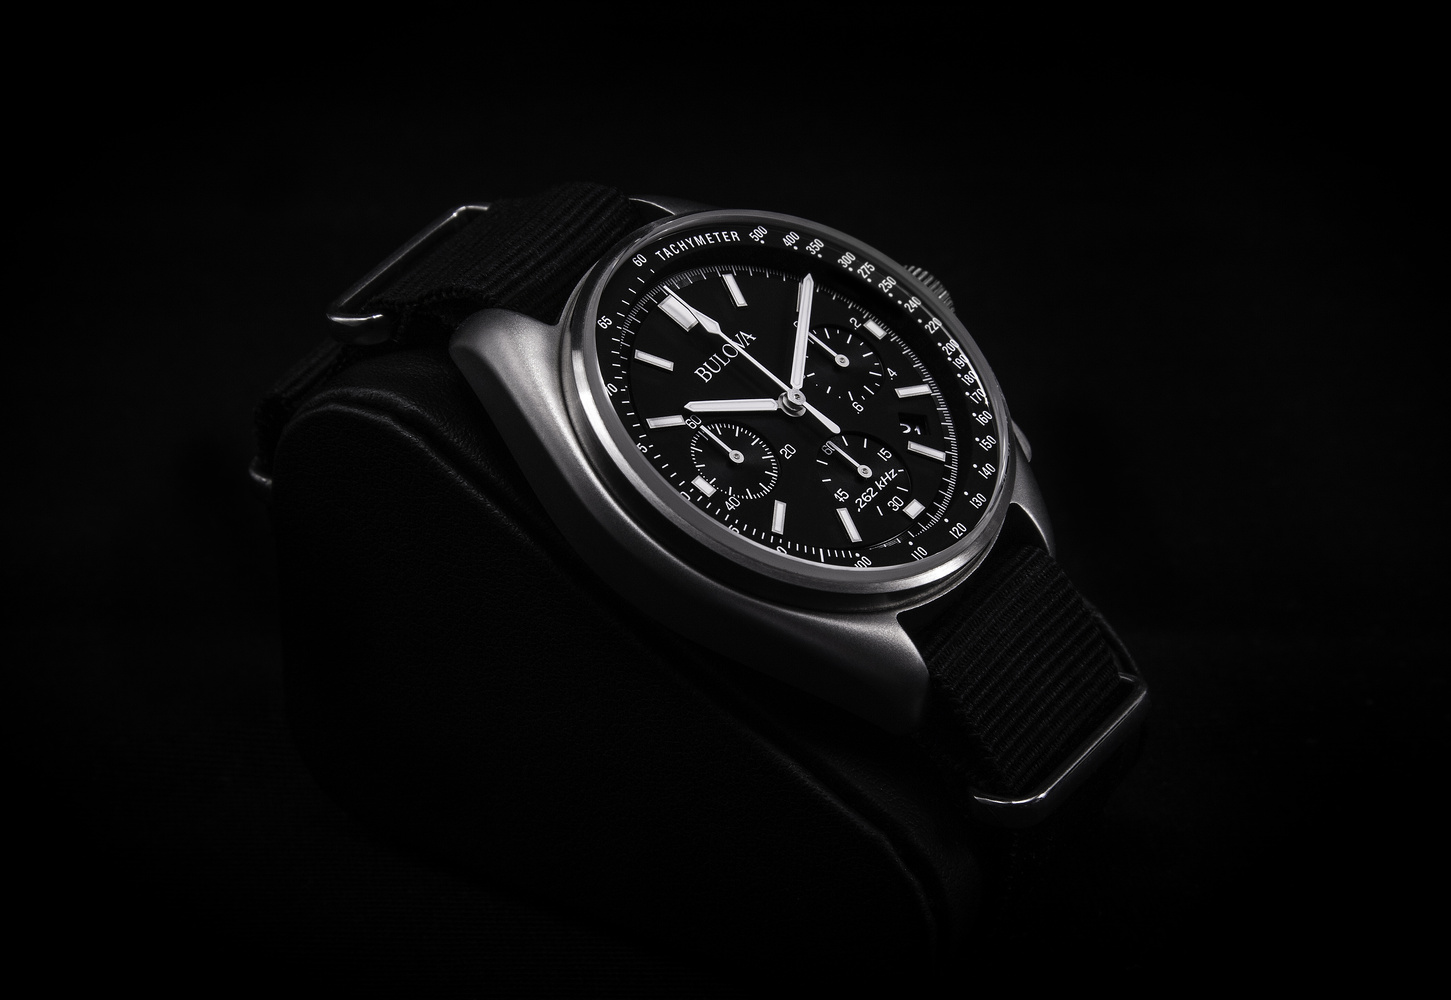 Bulova Moonwatch commercial shot by Luca Russo